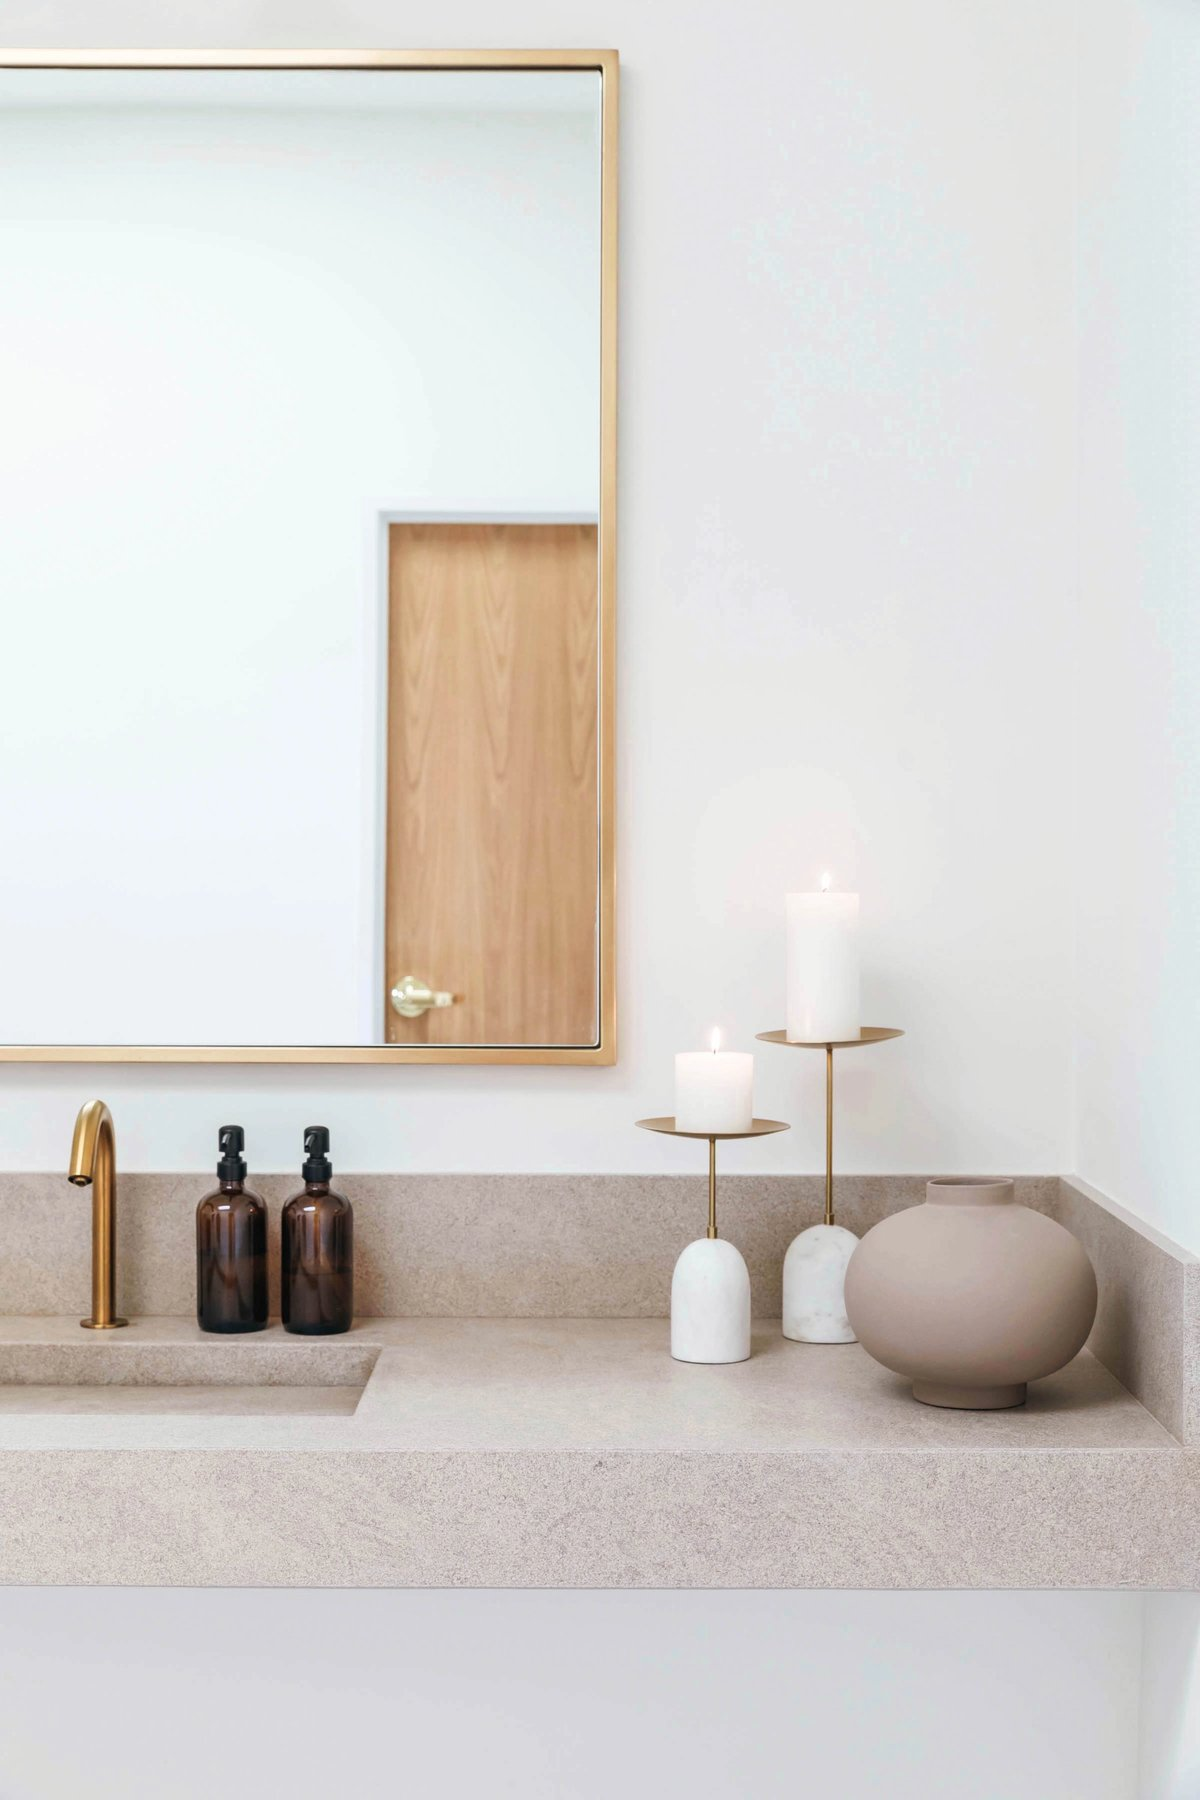 Brass and limestone accents